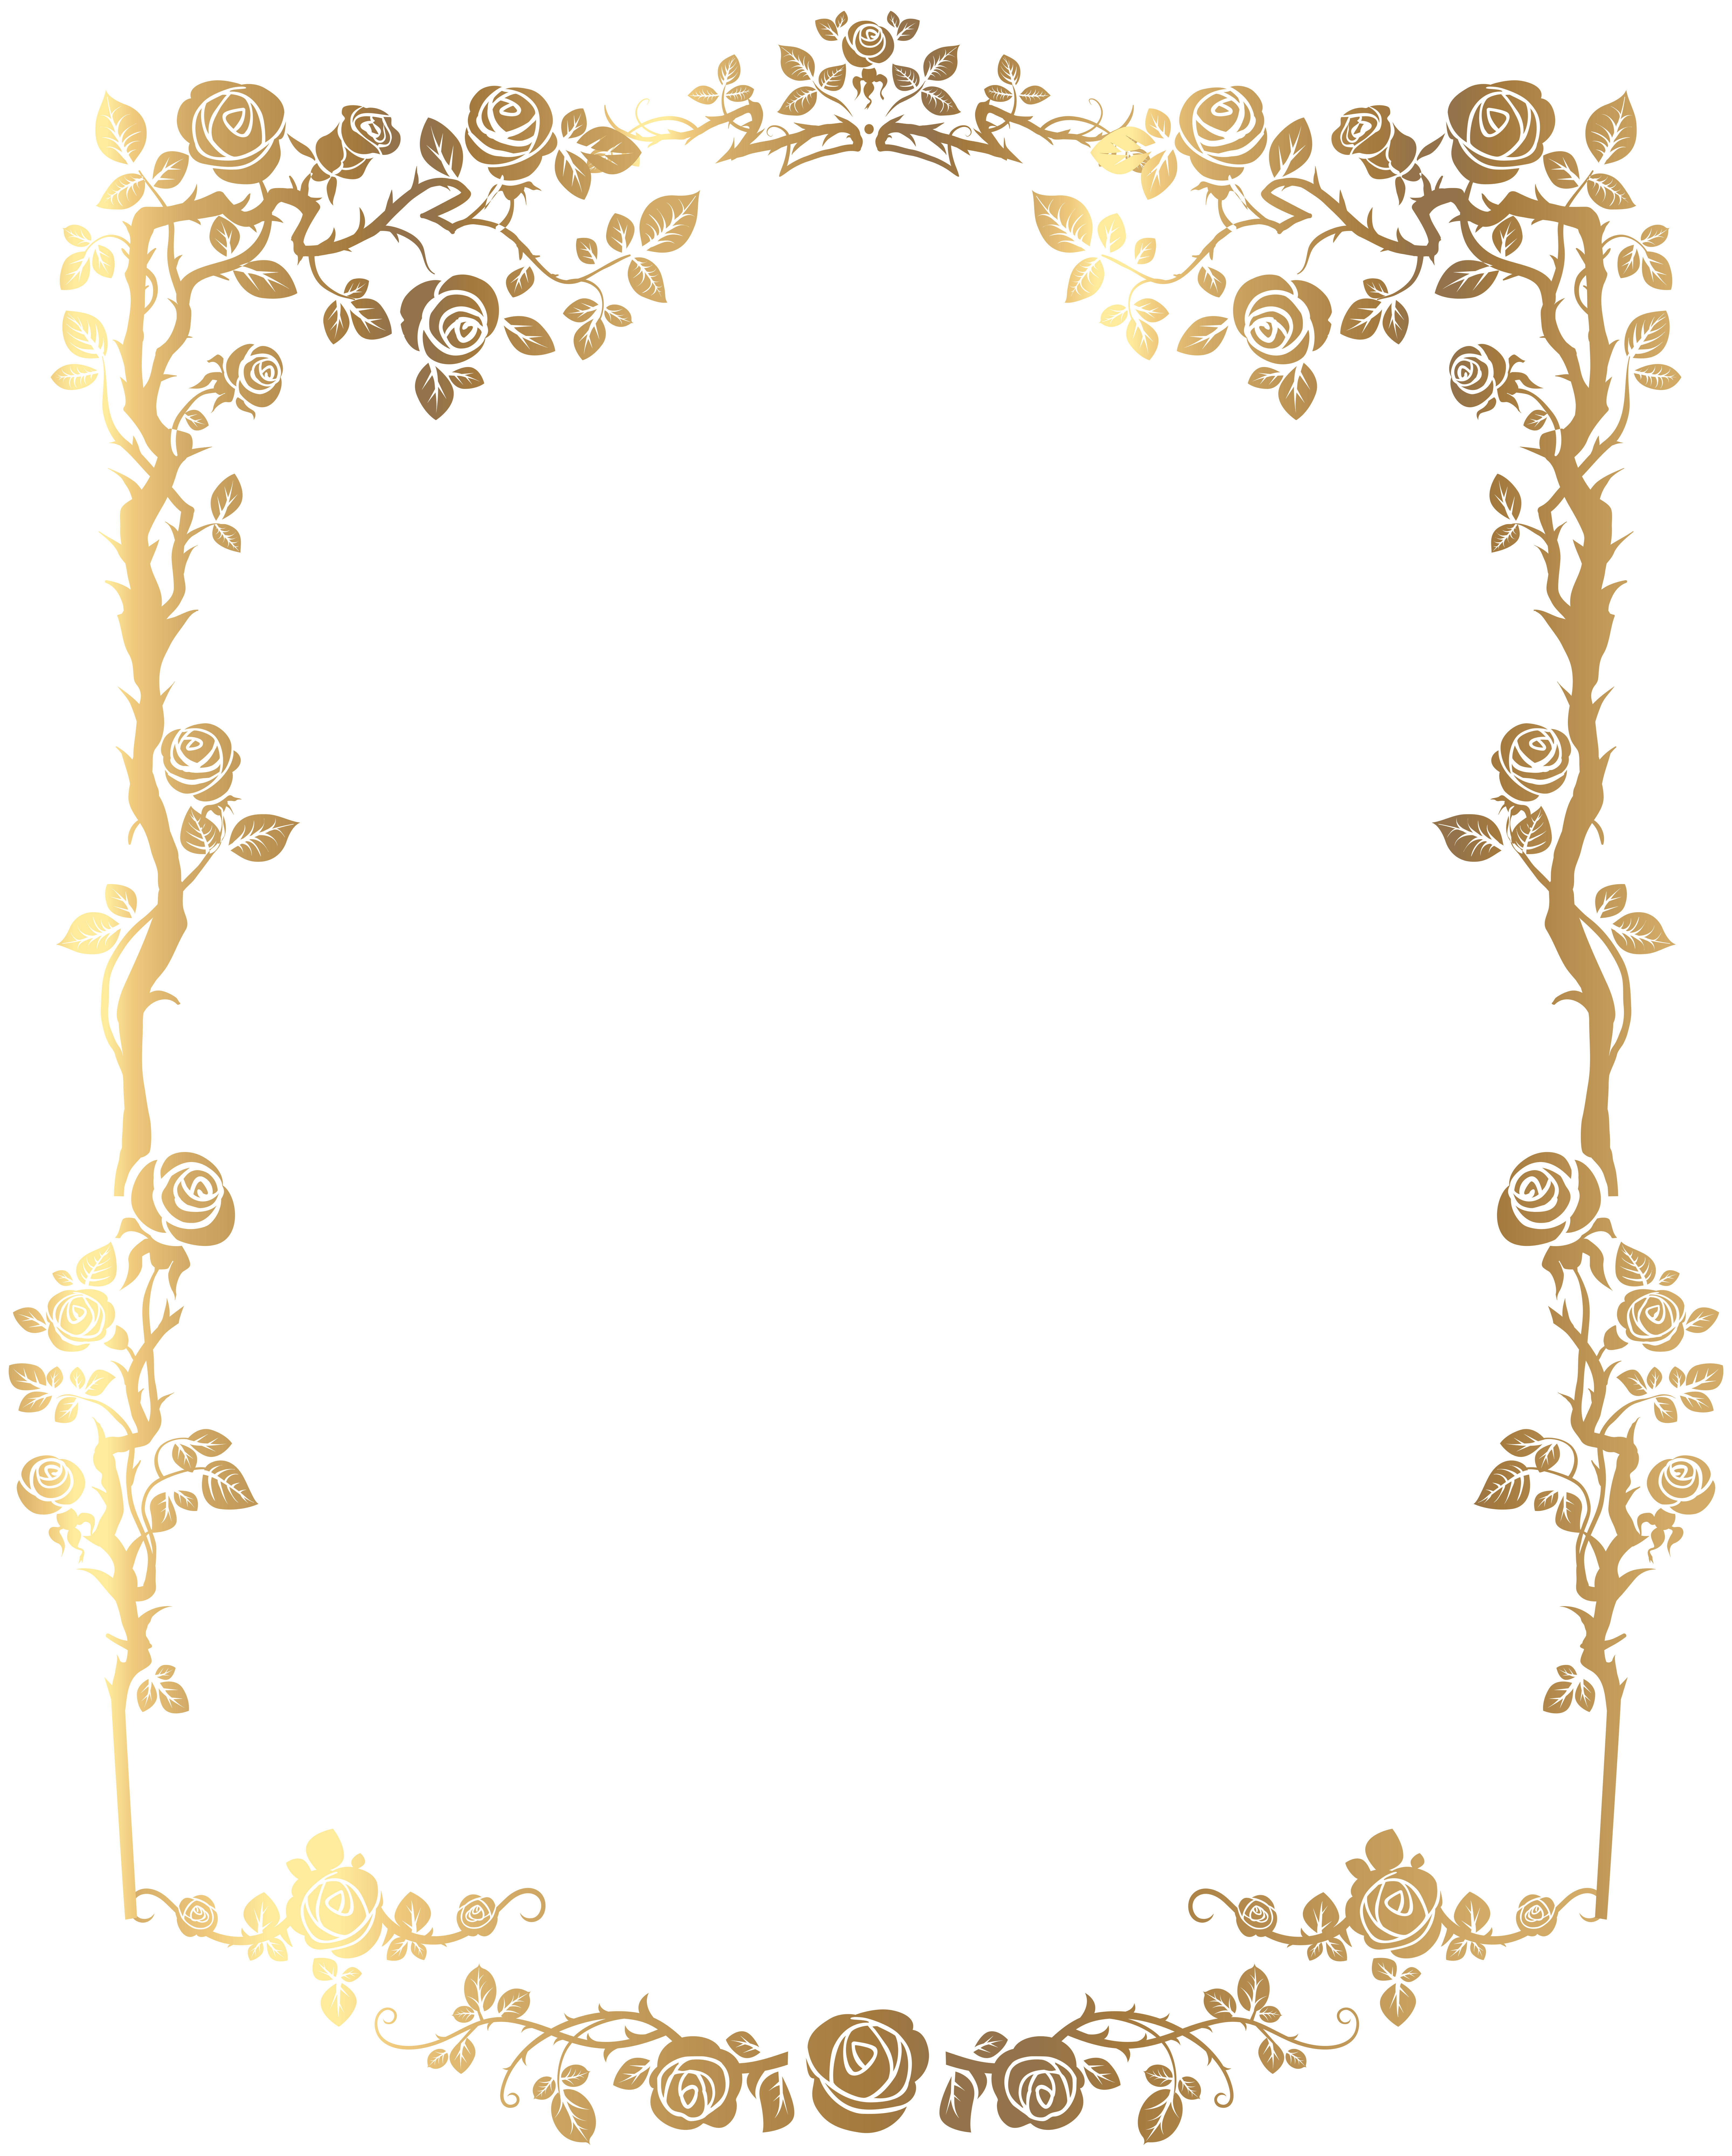 Golden For Photo Decorative Border Amazing Image PNG Images